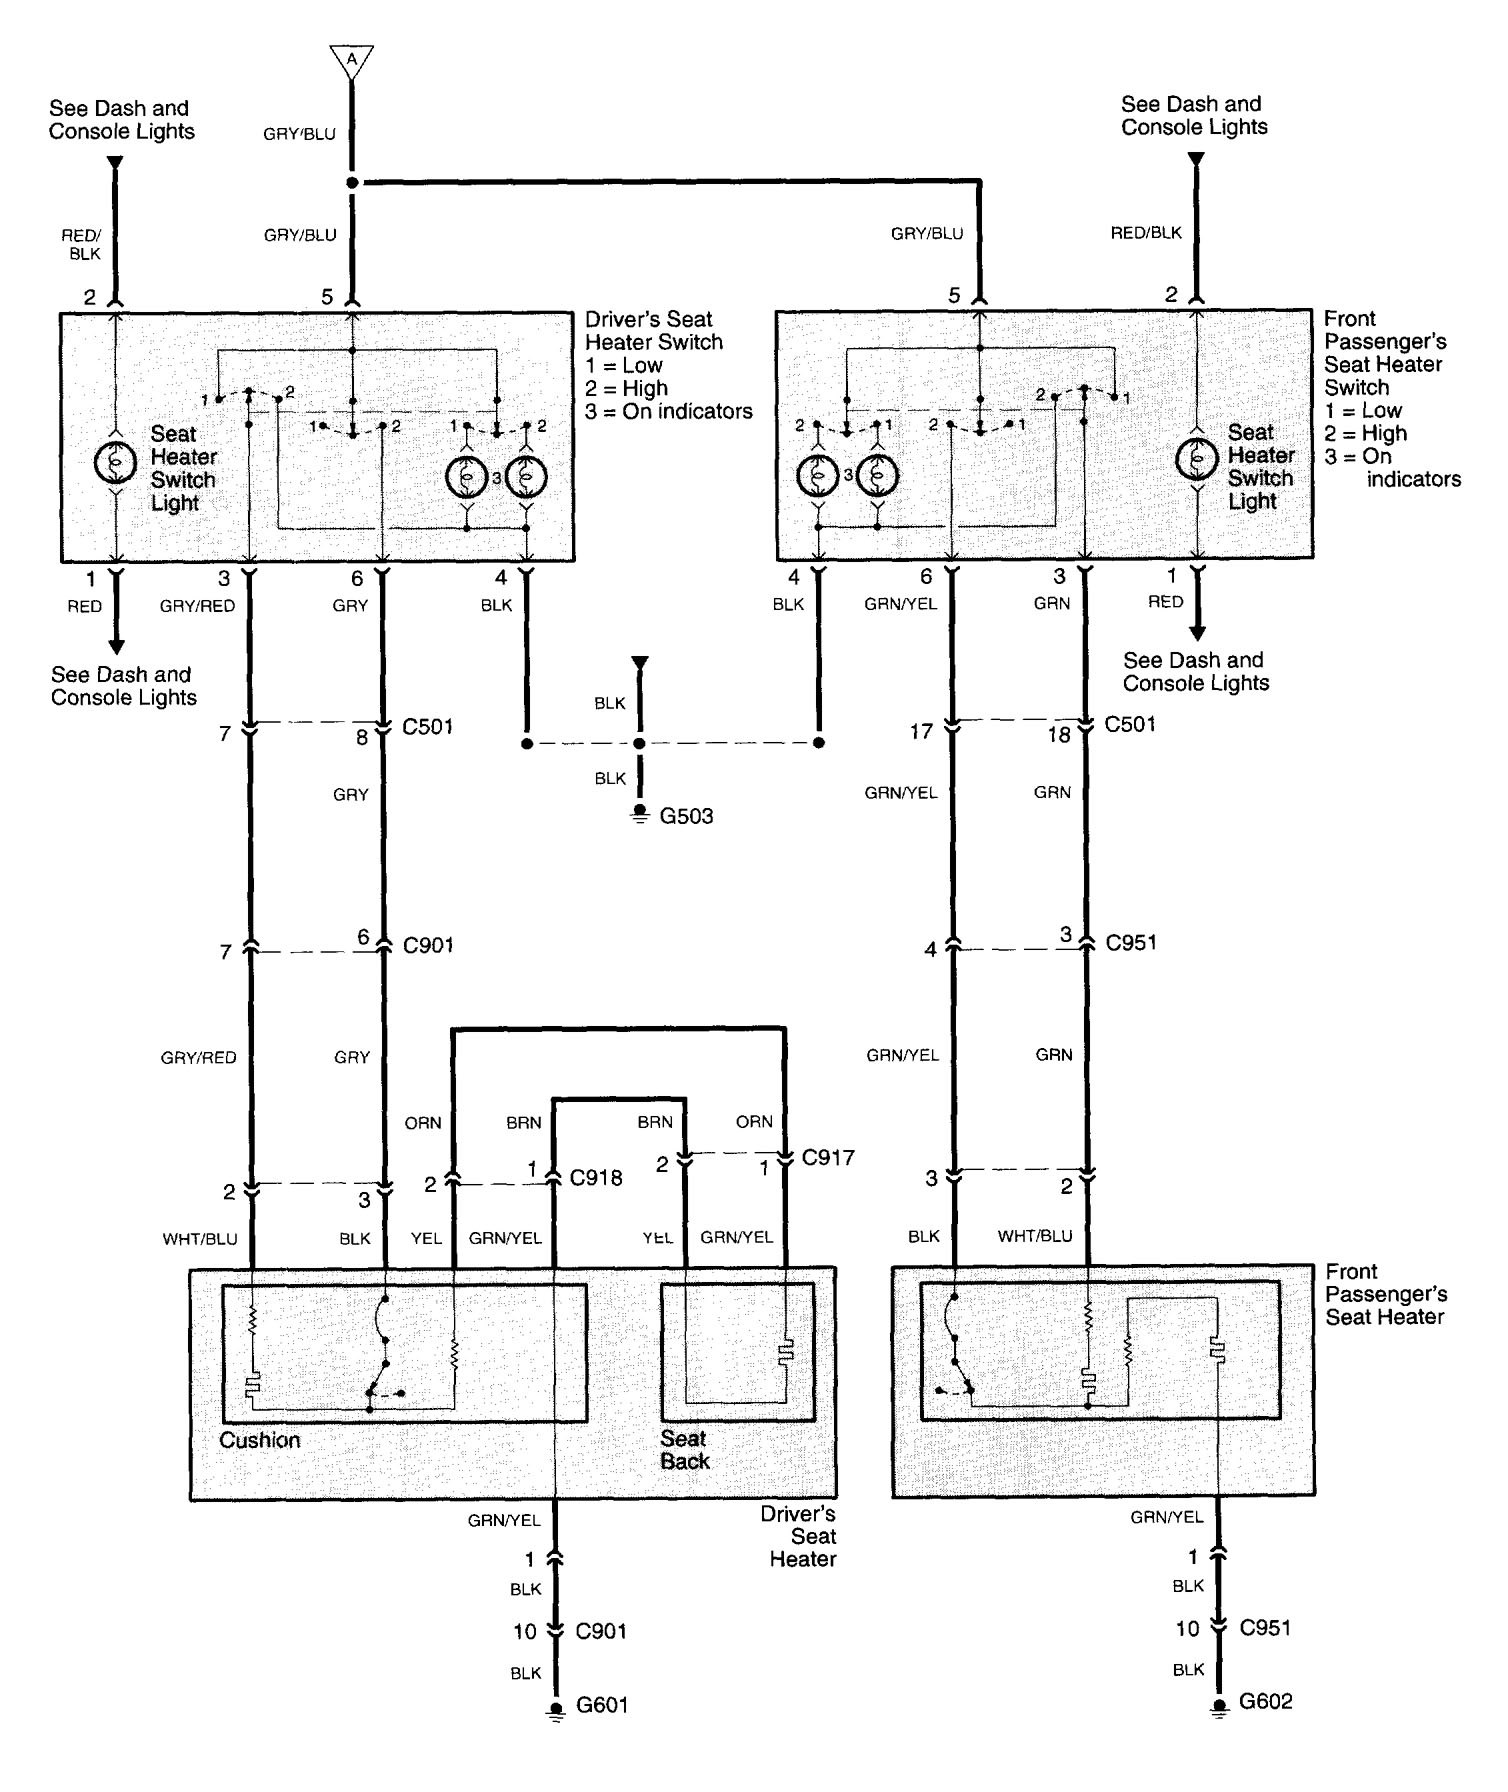 Heated Seat Wiring Diagram 2006 Cobalt • Wiring Diagram